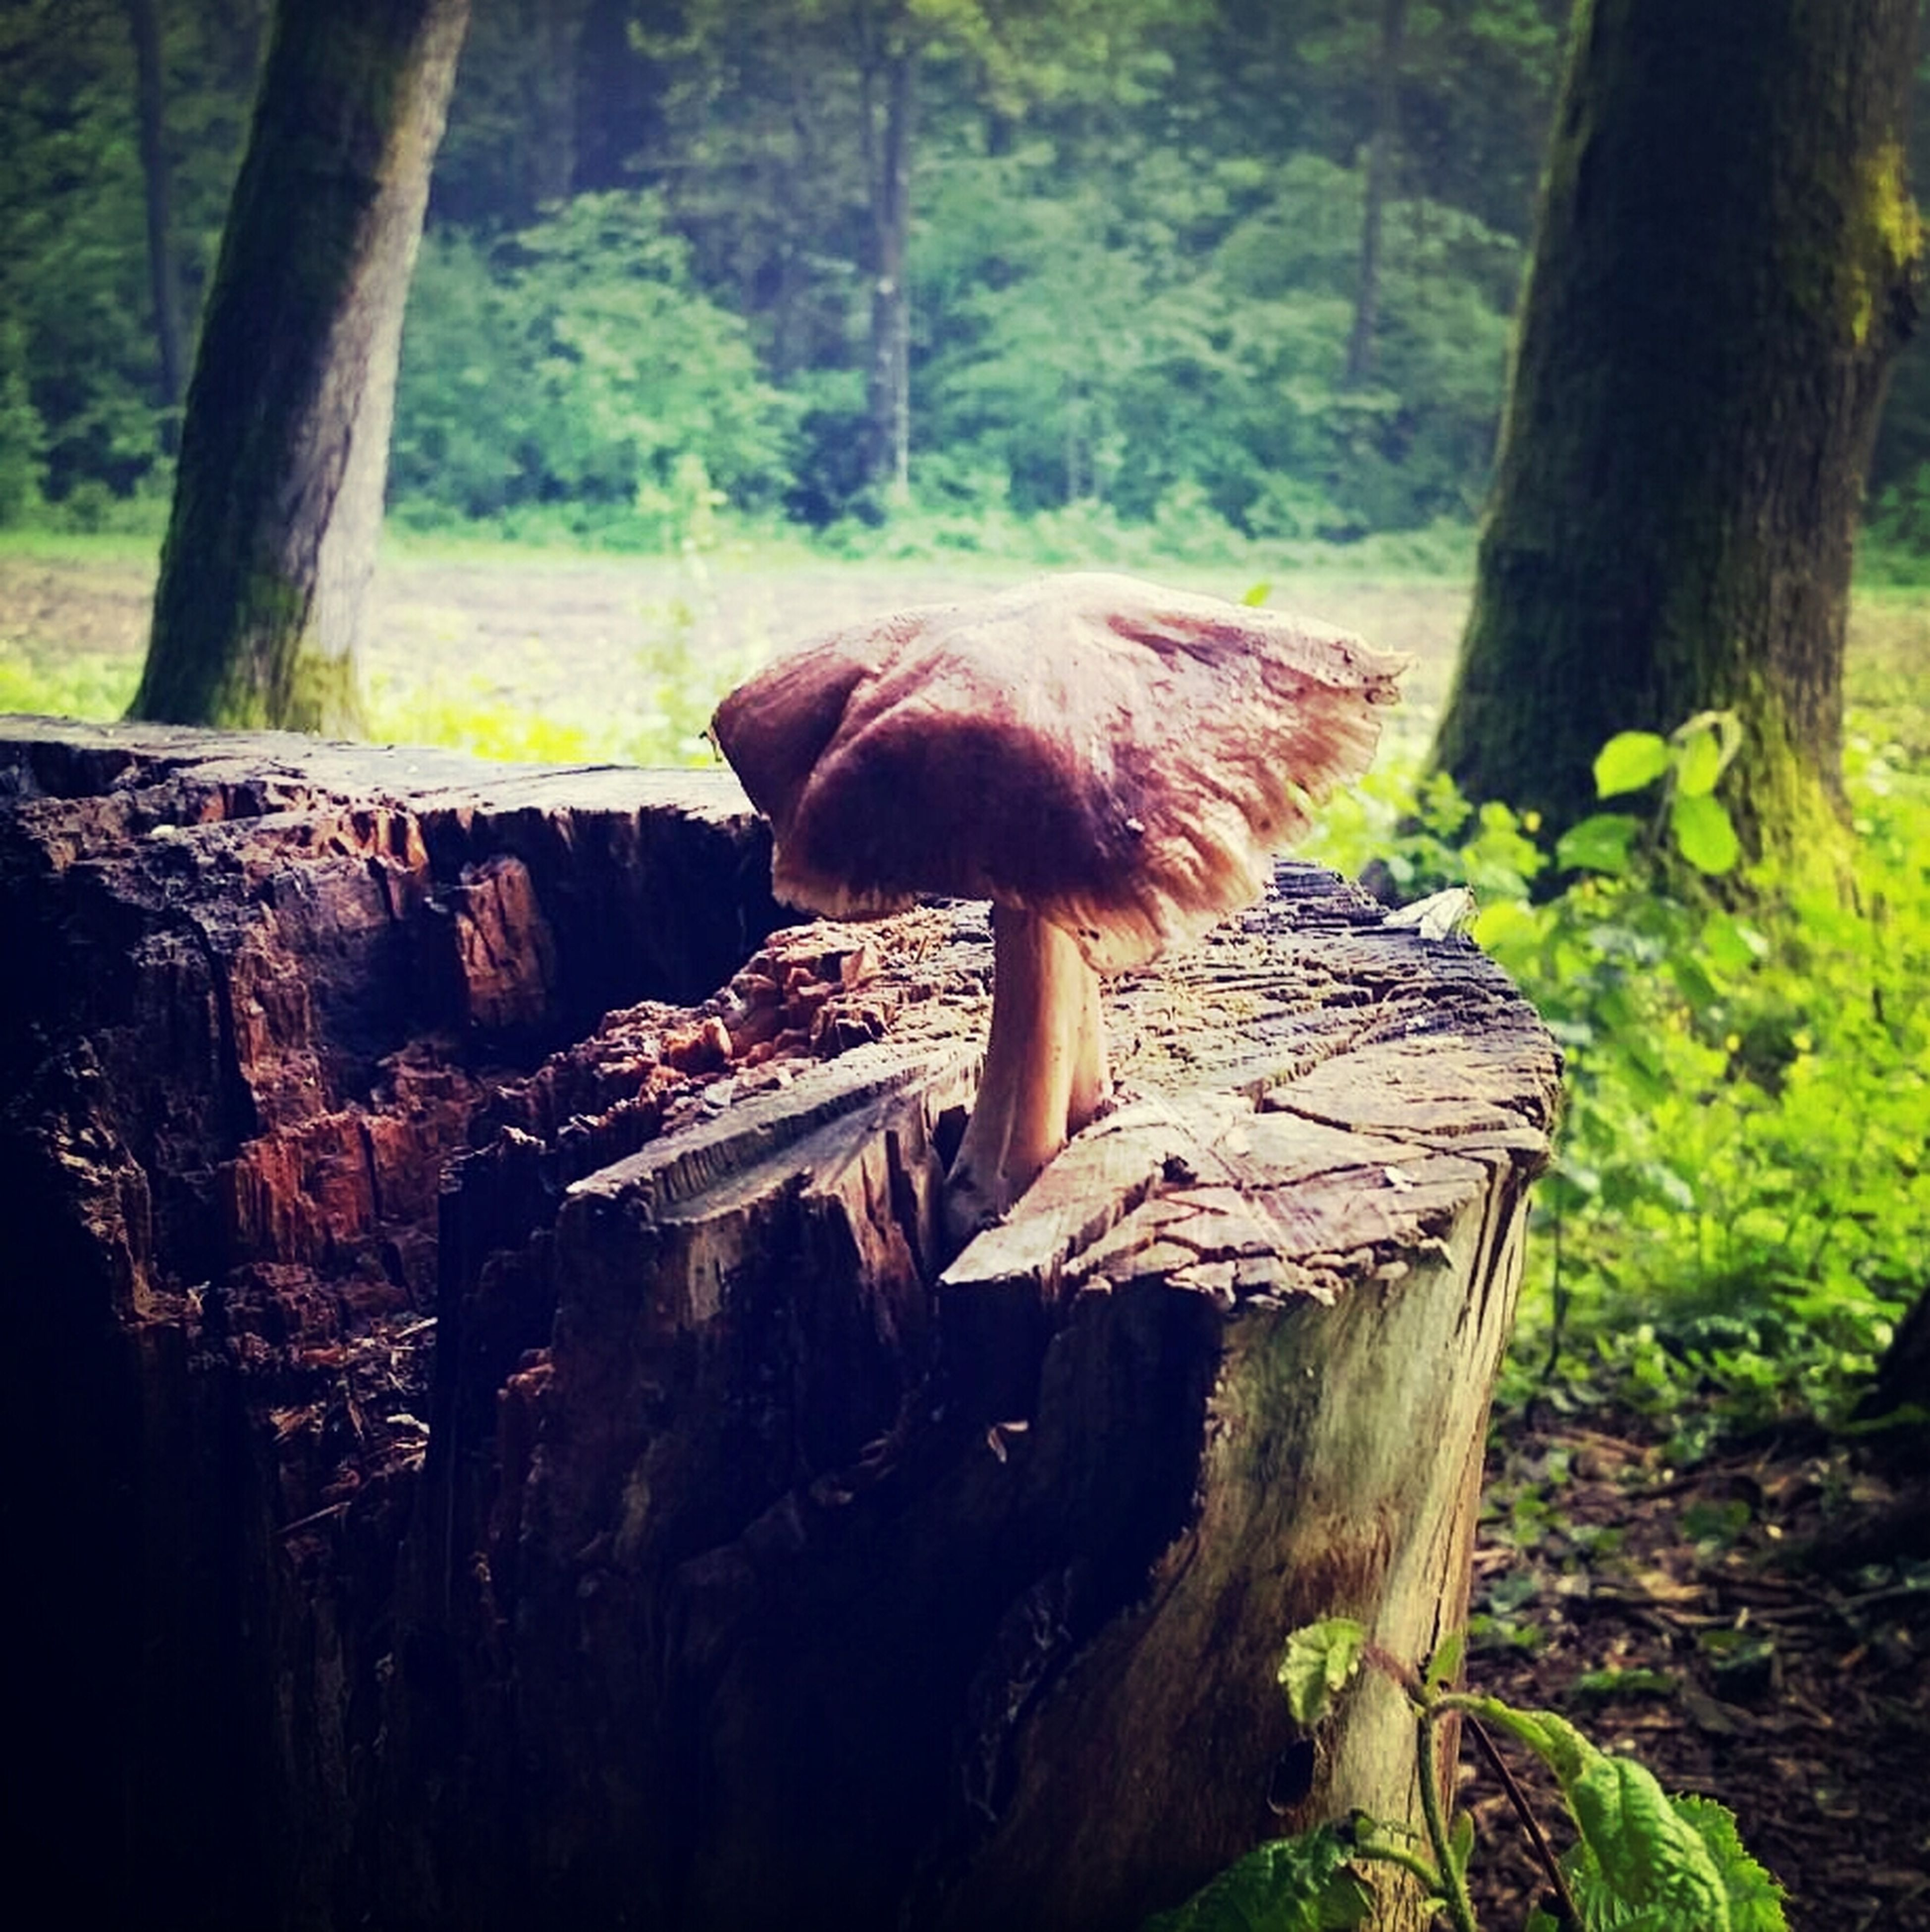 tree, forest, animal themes, tree trunk, mammal, one animal, wood - material, nature, wildlife, log, woodland, animals in the wild, full length, day, relaxation, outdoors, no people, sitting, side view, tree stump